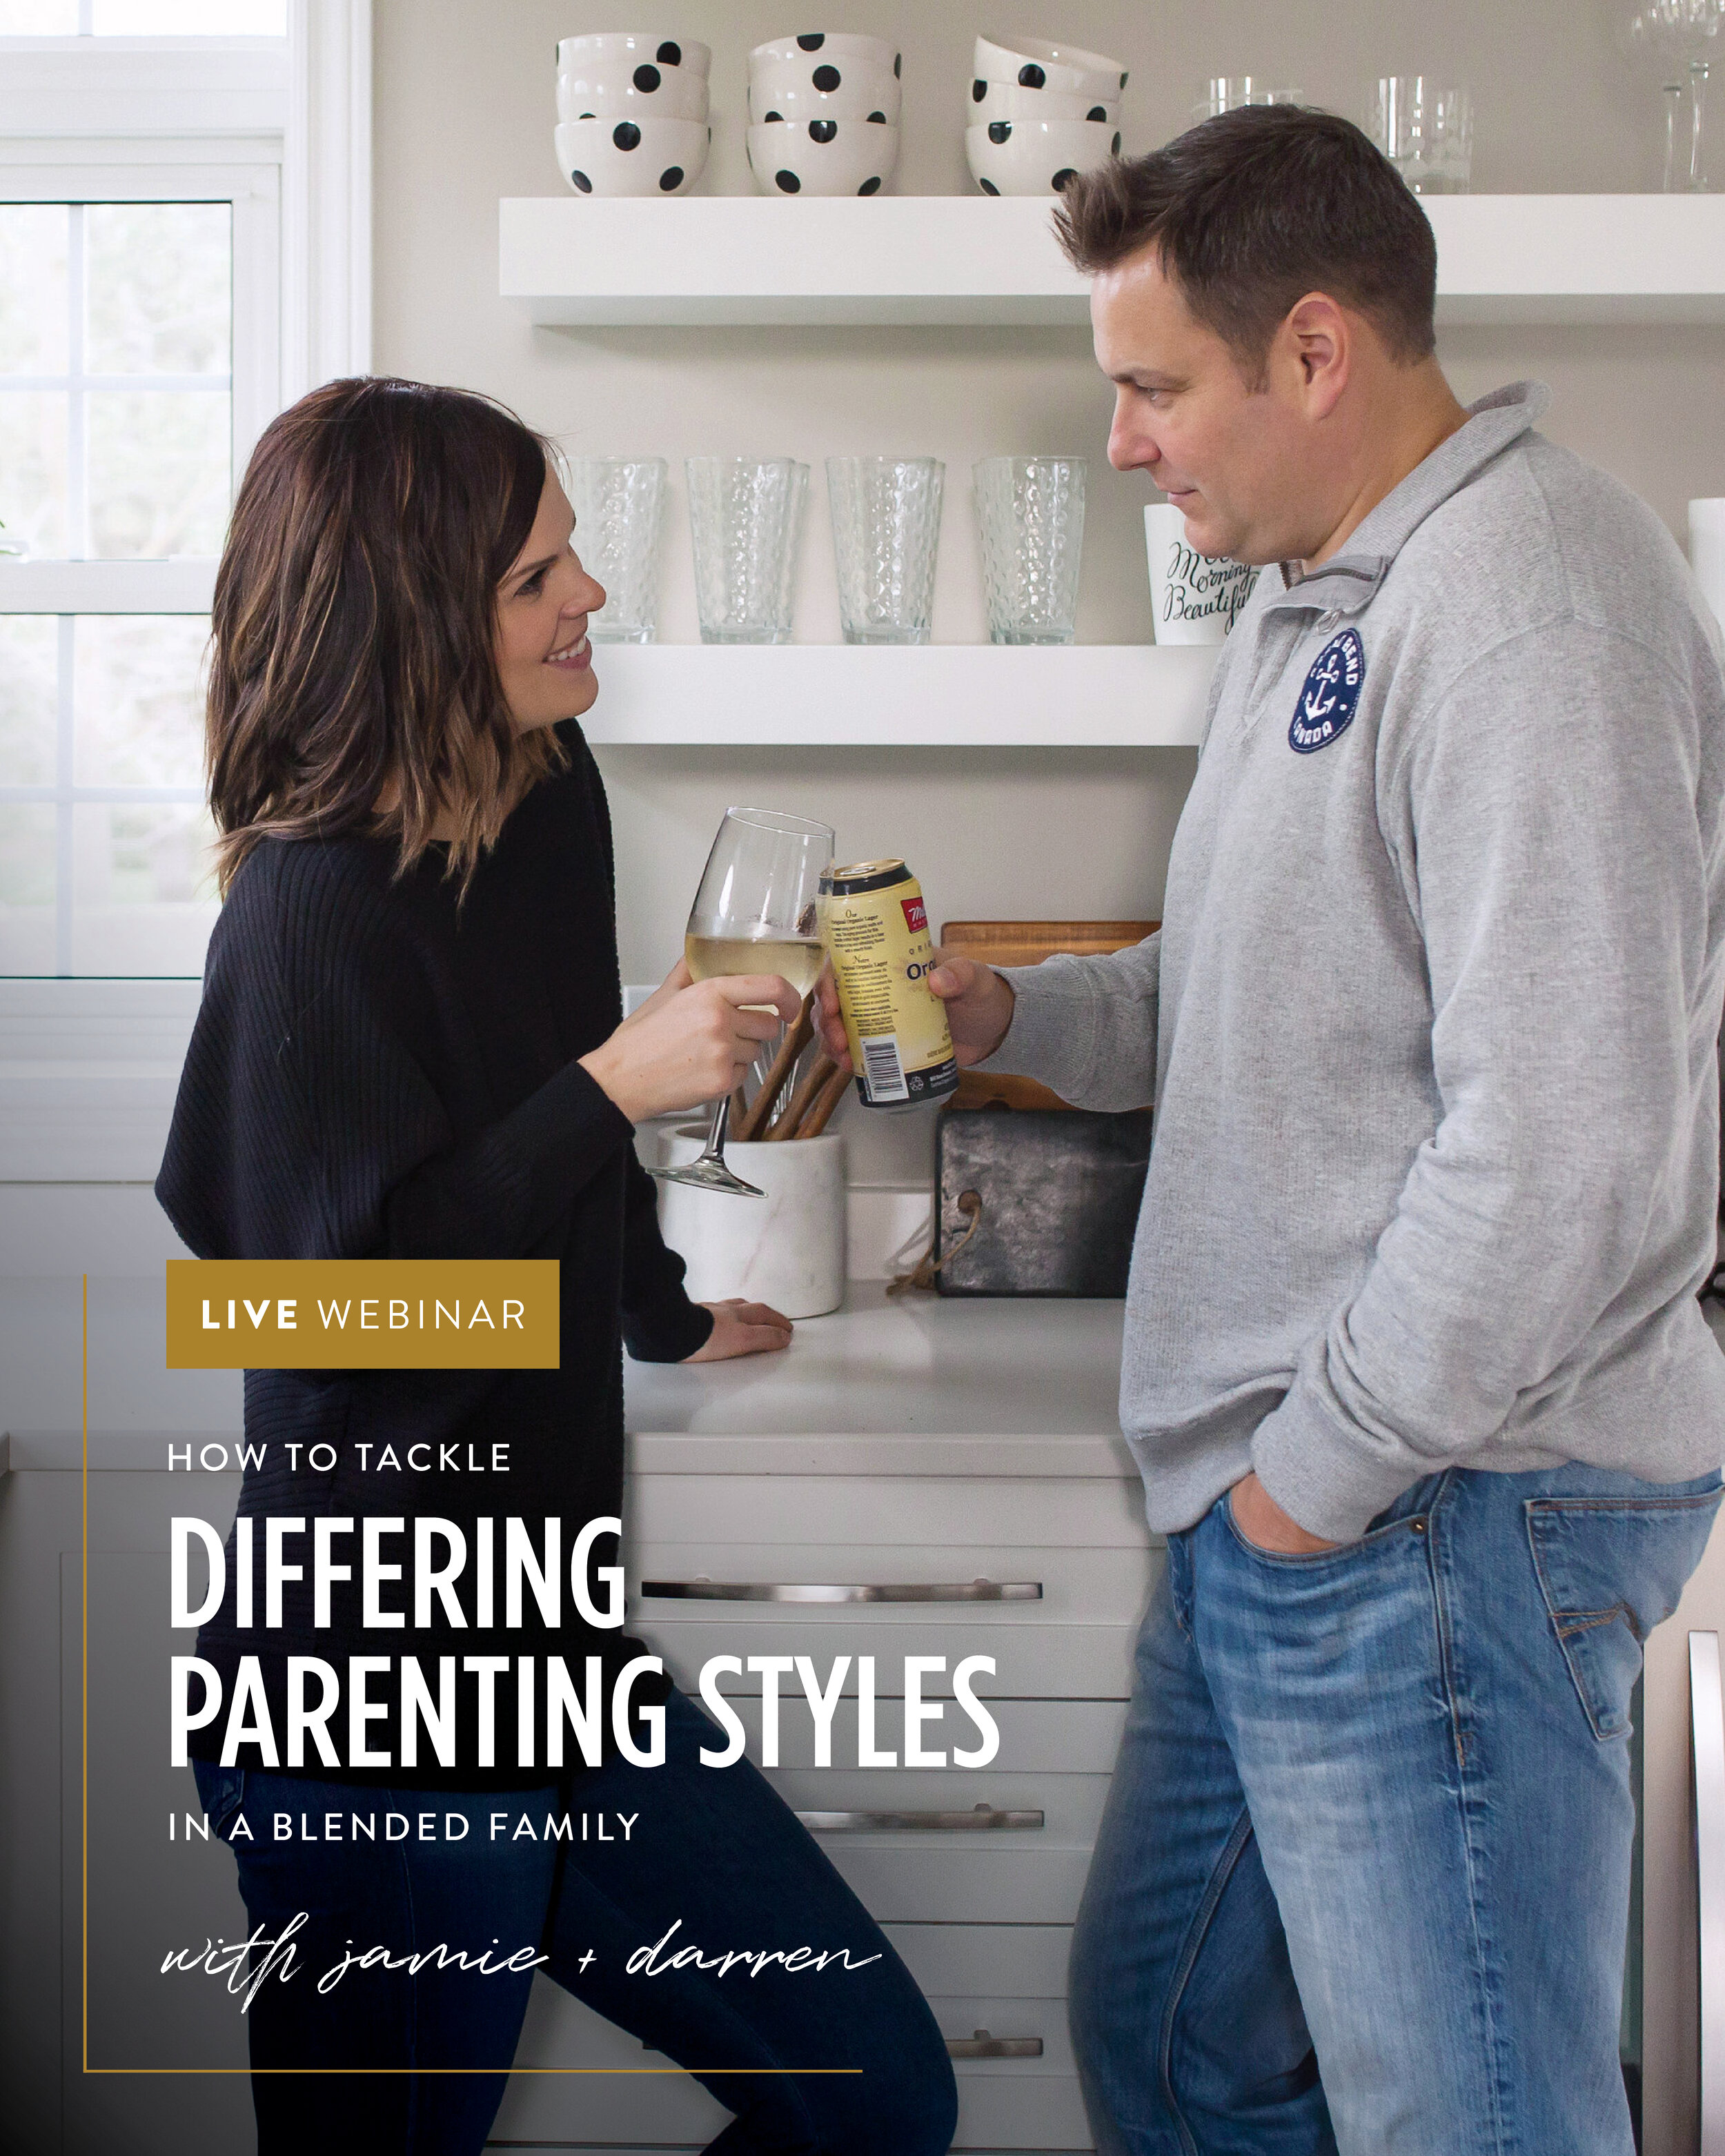 FINAL WEBINAR - HOW TO TACKLE DIFFERNT PARENTING STYLES .jpg